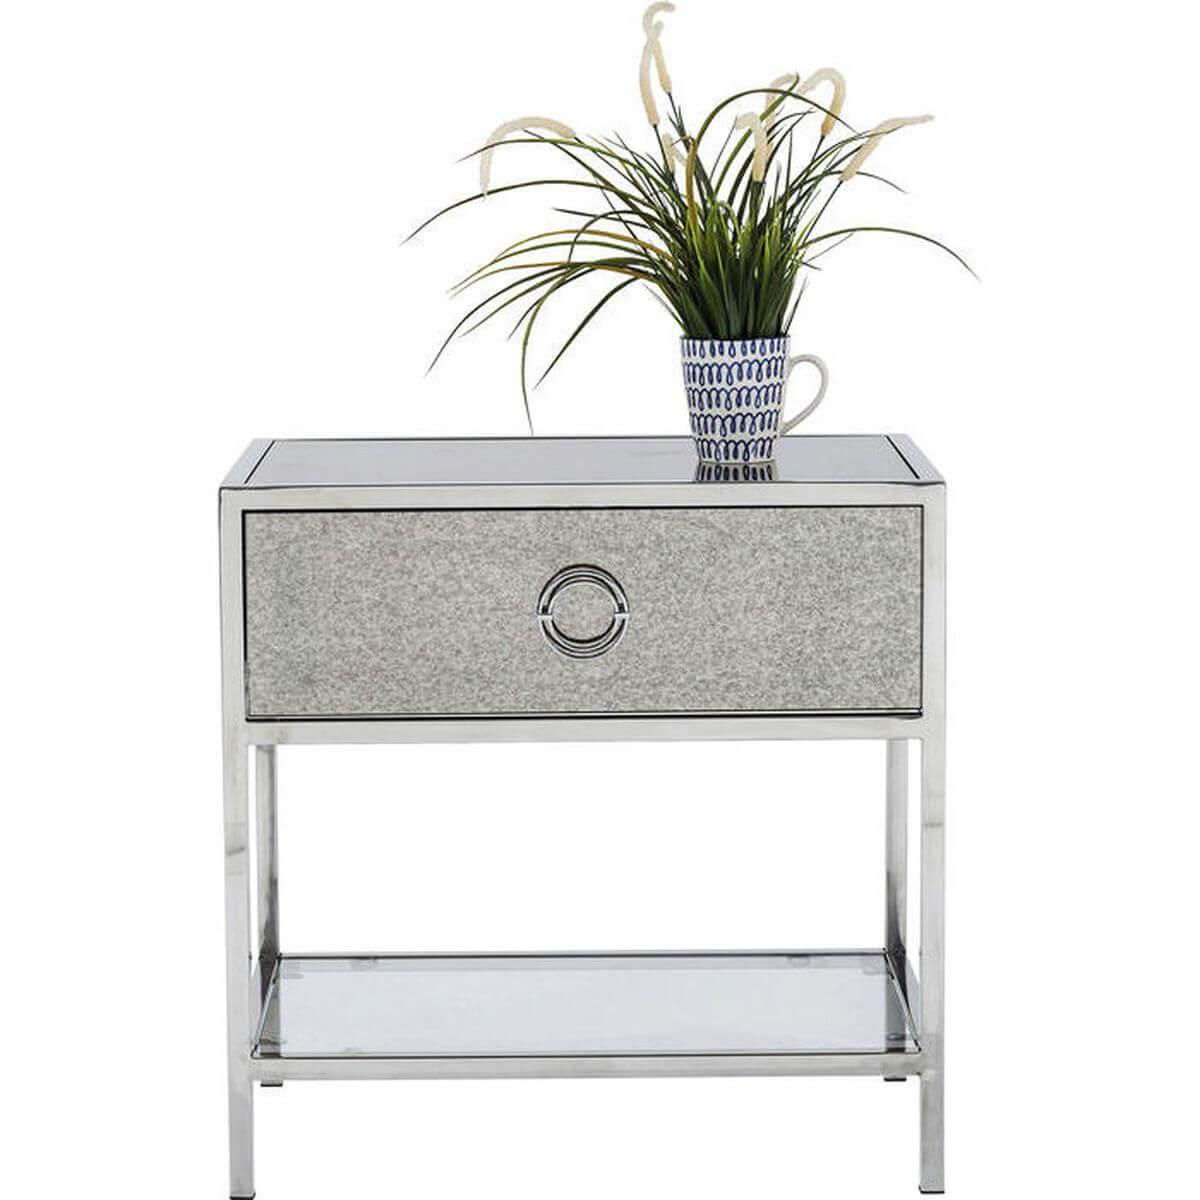 Petite commode Moonscape Kare Design